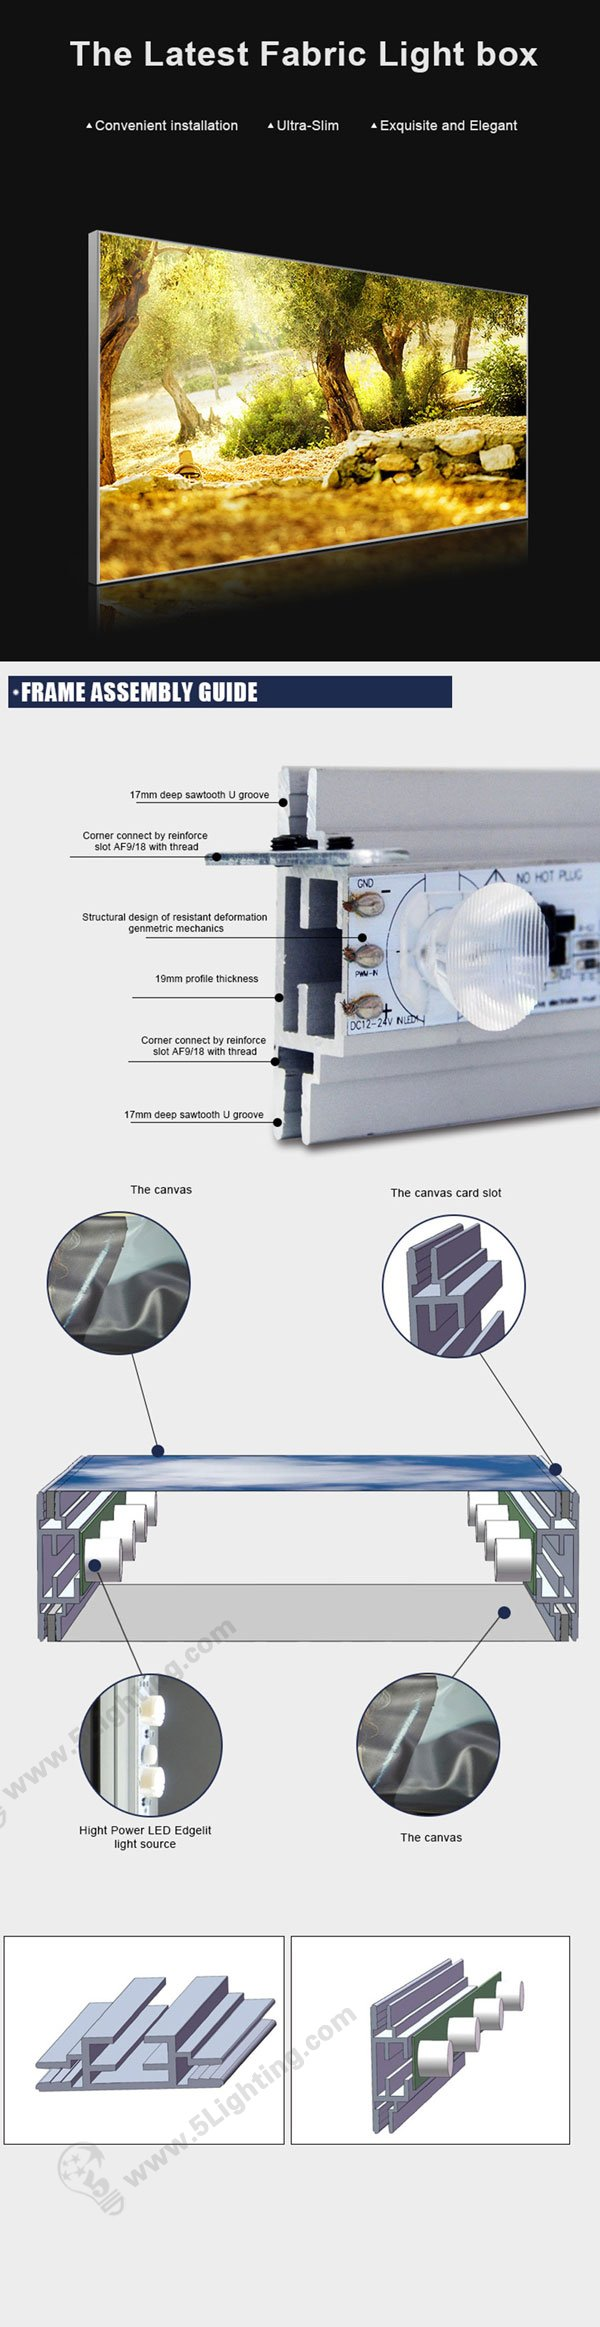 Features of Led Fabric Light Box